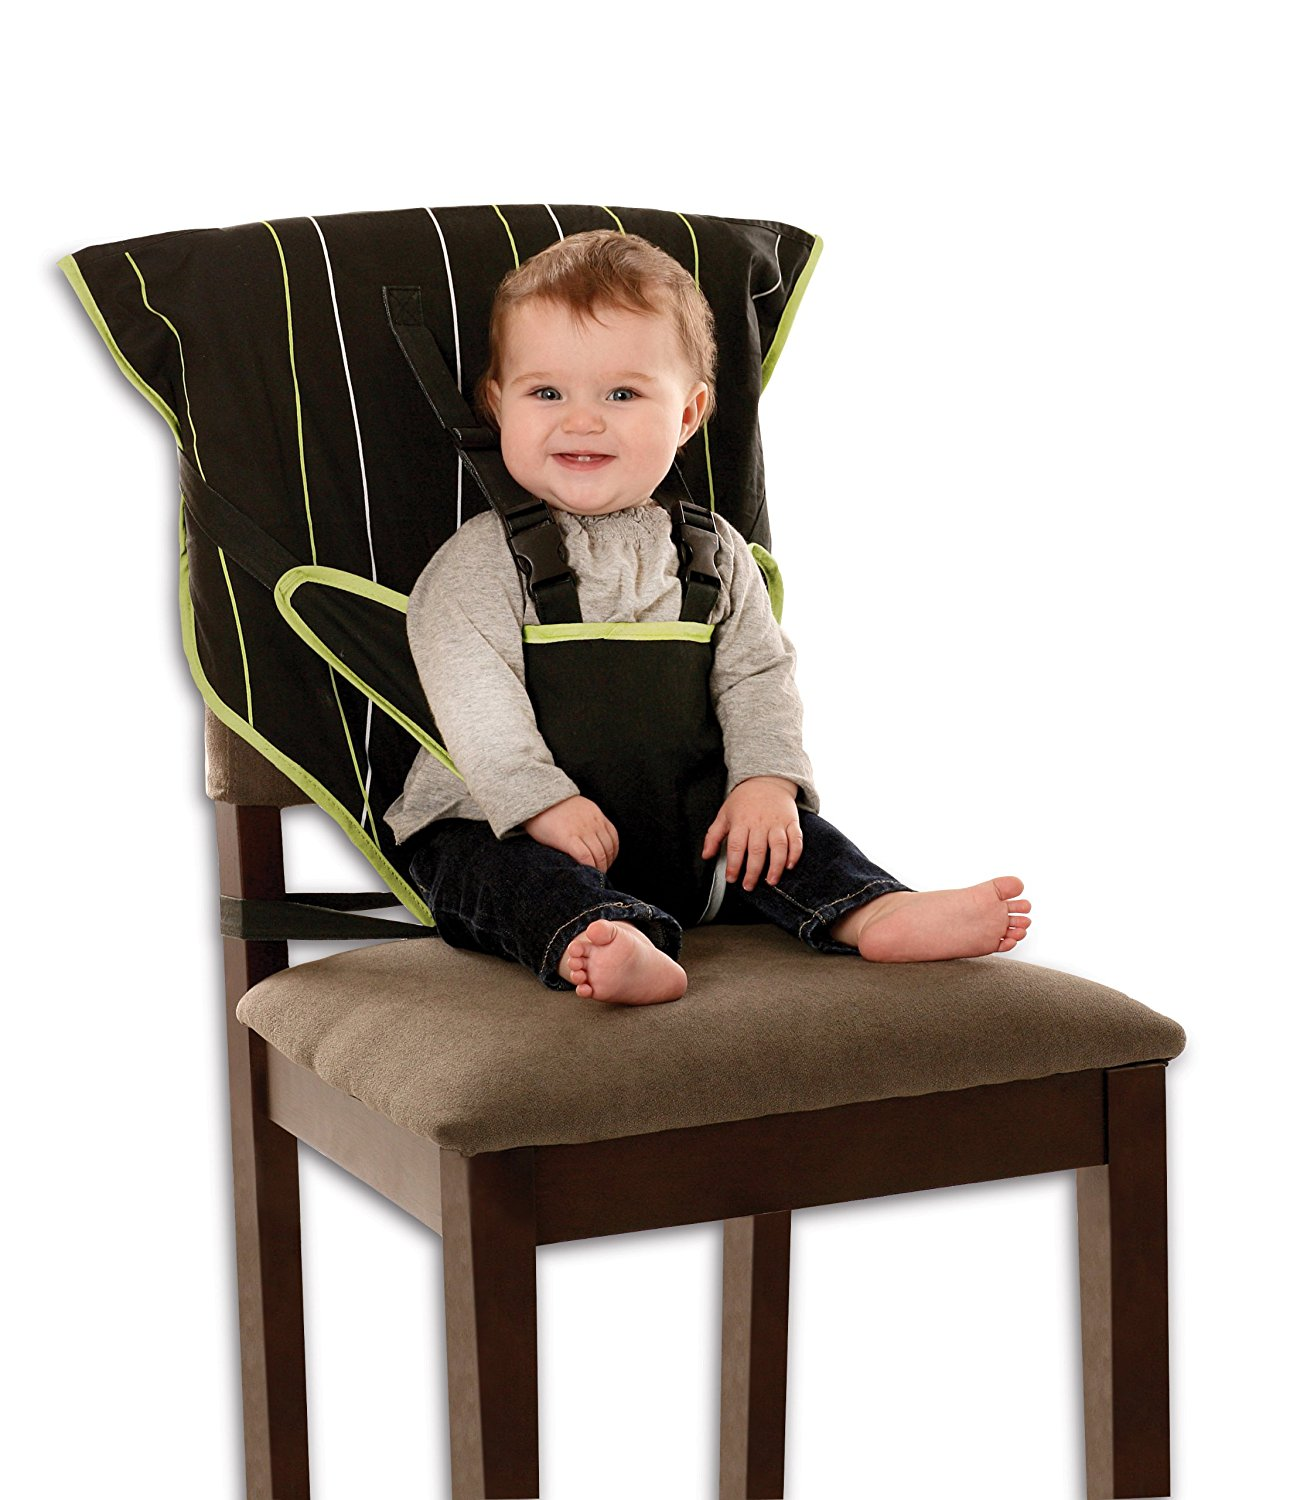 cozy cover portable high chair, infant safety seat, portable high chair, travel high chair, best portable high chair, best travel high chair